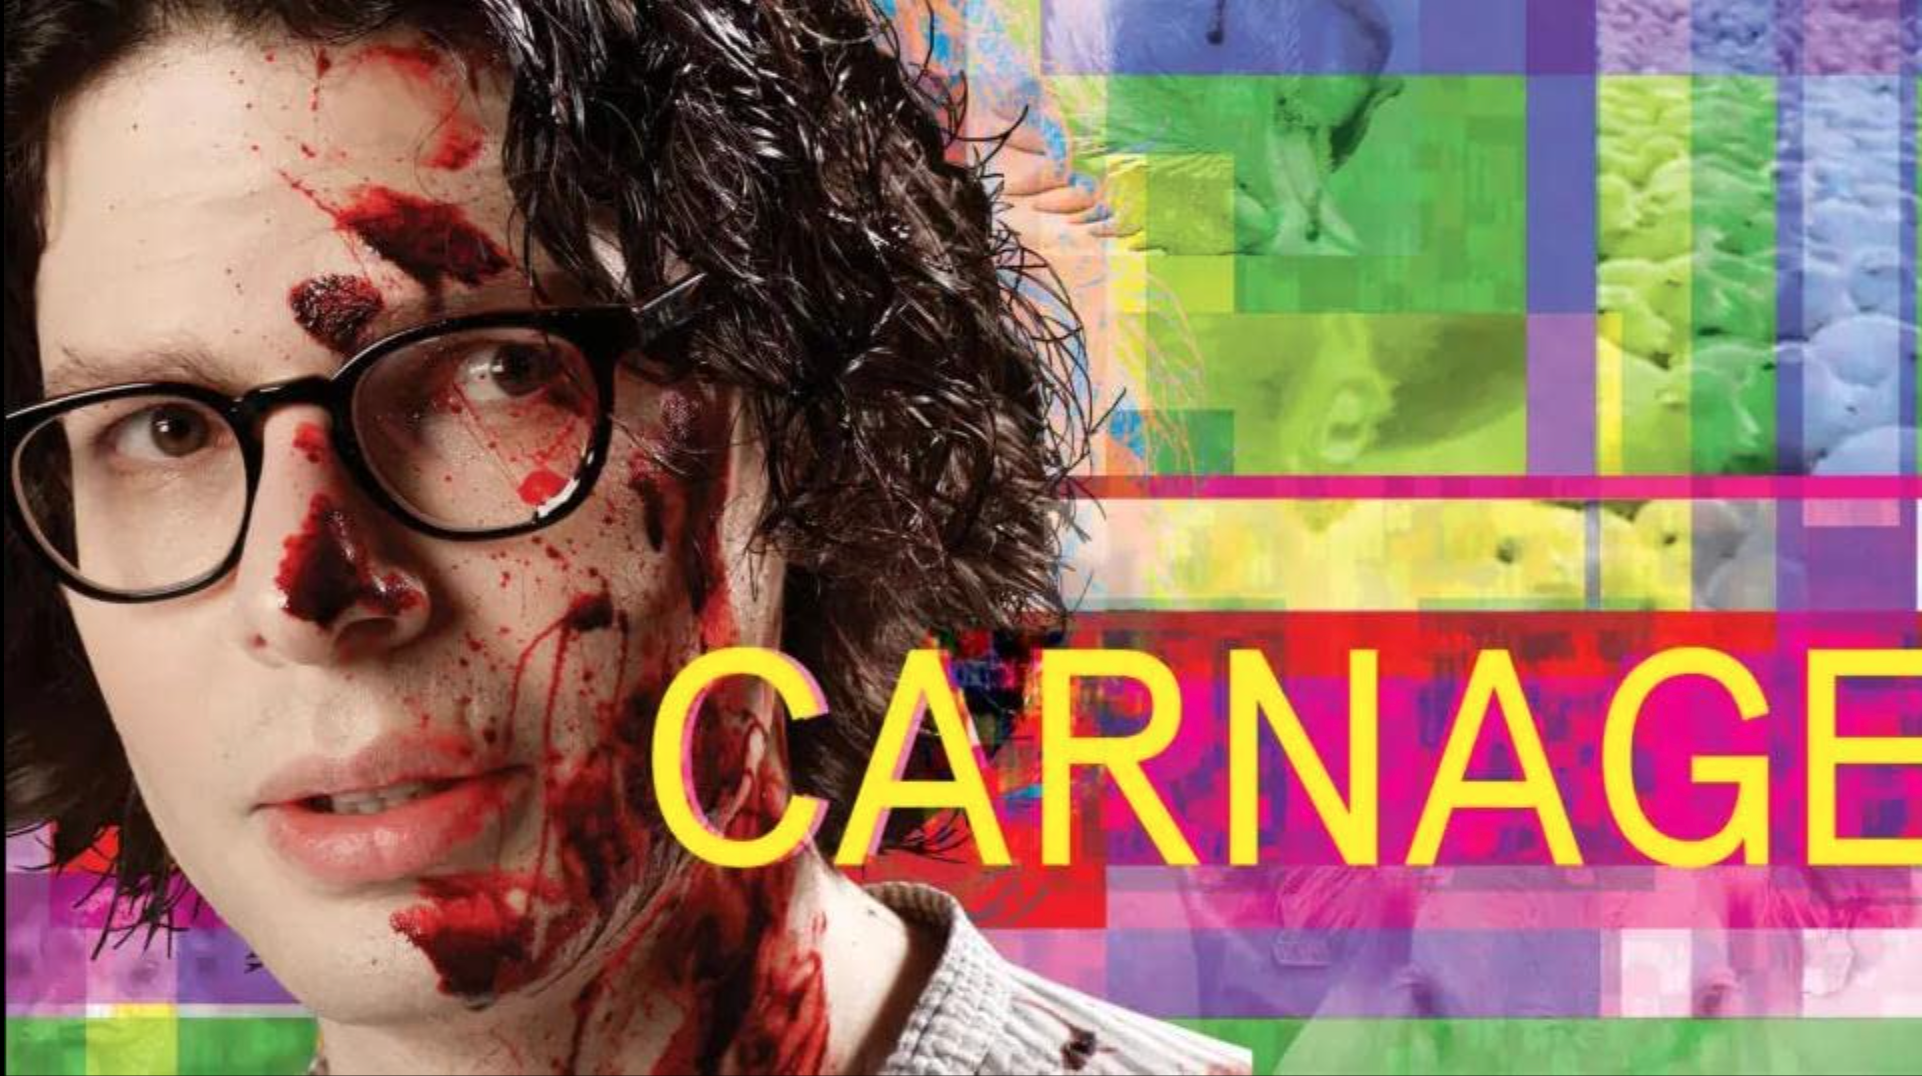 Vegan movie poster with a man with blood smeared on his face and the word Carnage